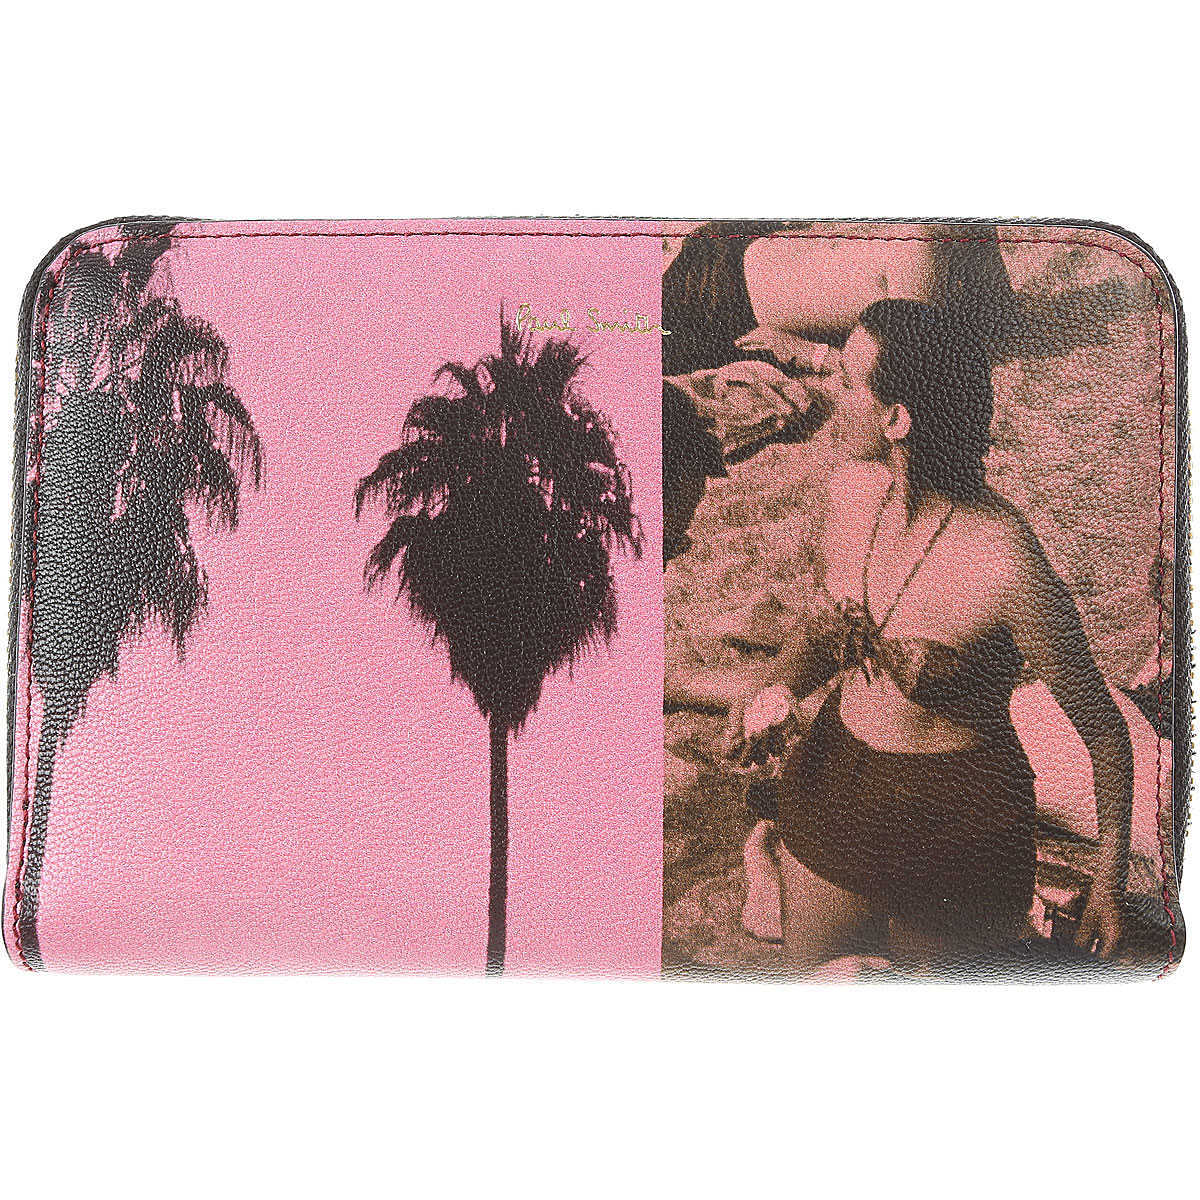 Paul Smith Wallet for Women Pink - GOOFASH